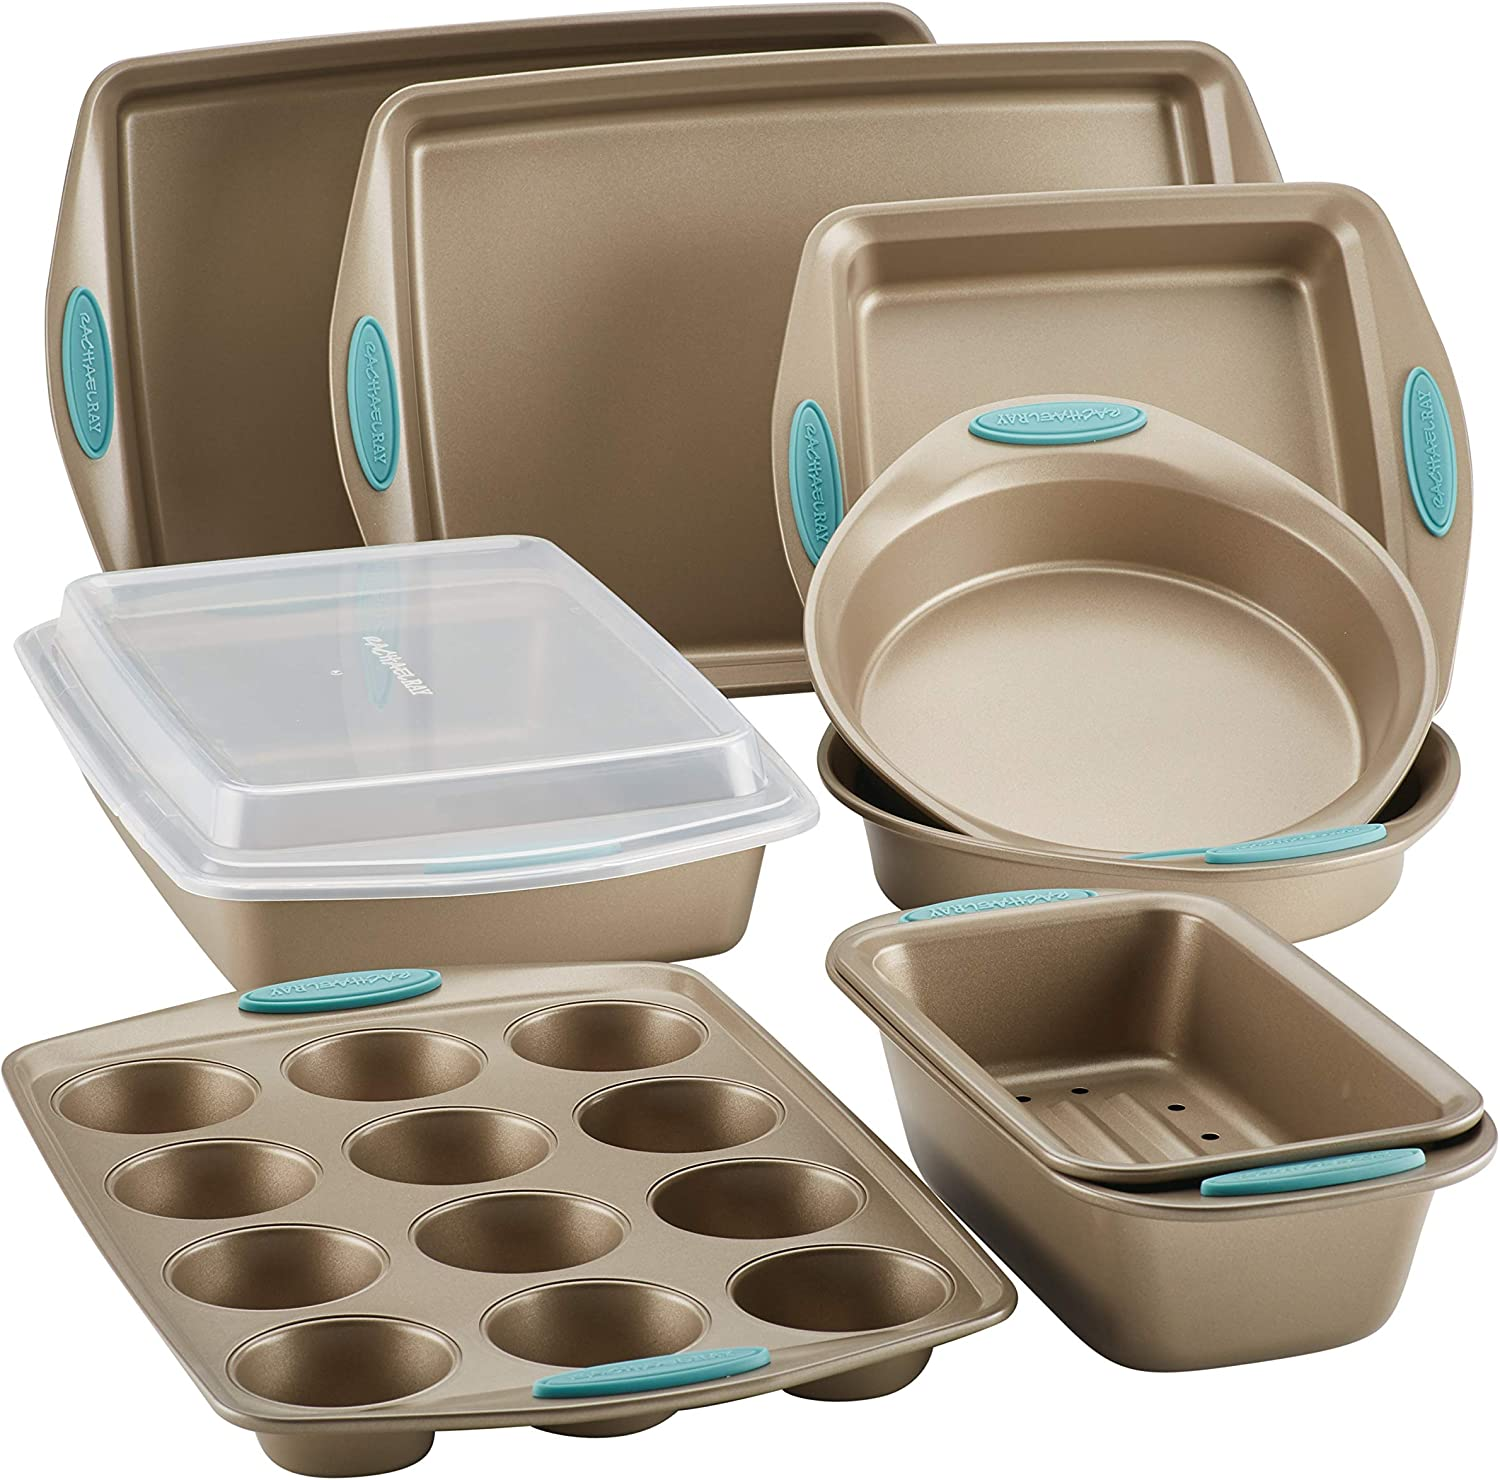 Nonstick Bakeware Set 10 Piece